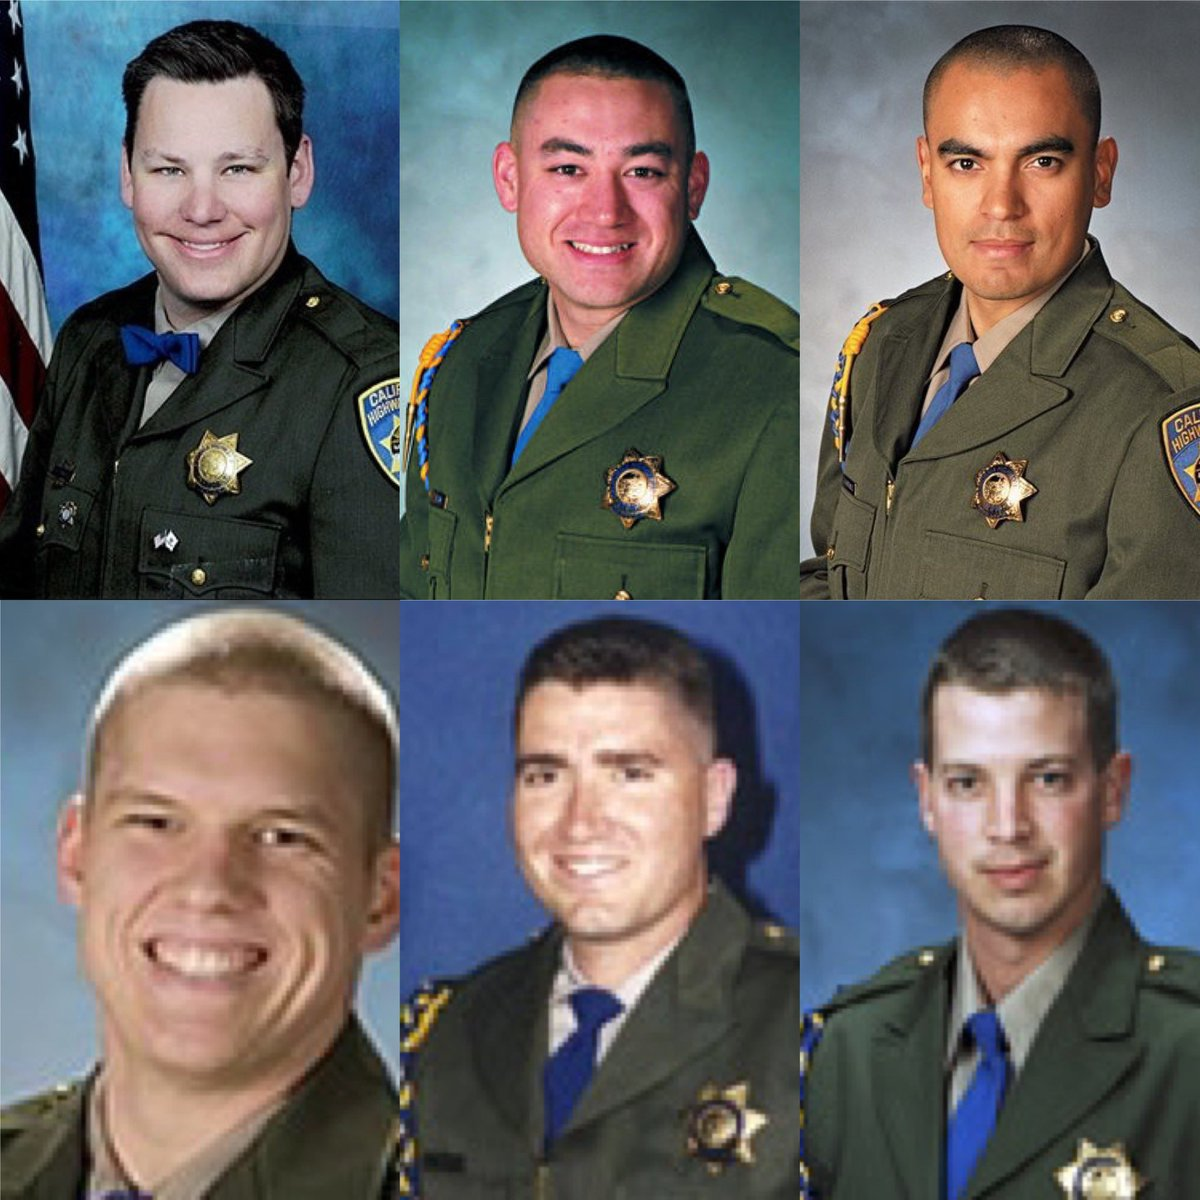 Everyday we honor and memorialize the life of our fallen officers. 🙏🏼The images of the posted officers have all fallen in the line of duty in the month of February. 🔵⚫️🔵⚫️🙏🏼🚔🚨 🇺🇸#californiahighwaypatrol #CHP #endofwatch #fountainceremony #eow #warriors #neverforgotten